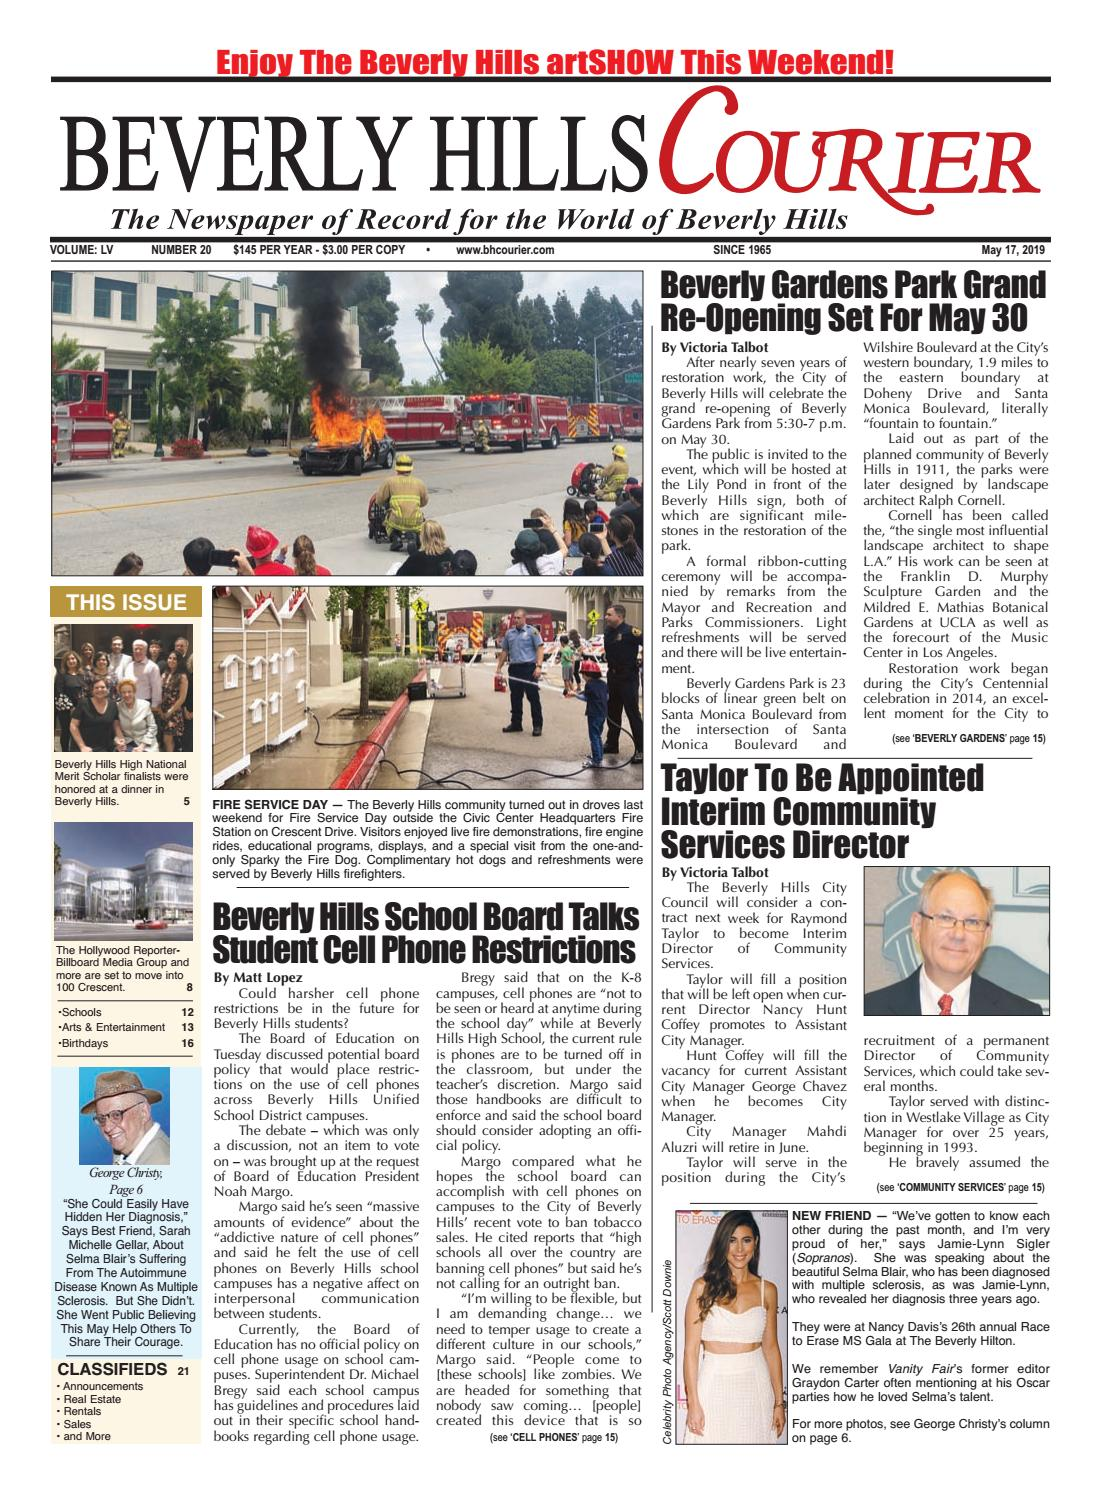 BH Courier E-edition 051719 by The Beverly Hills Courier - issuu